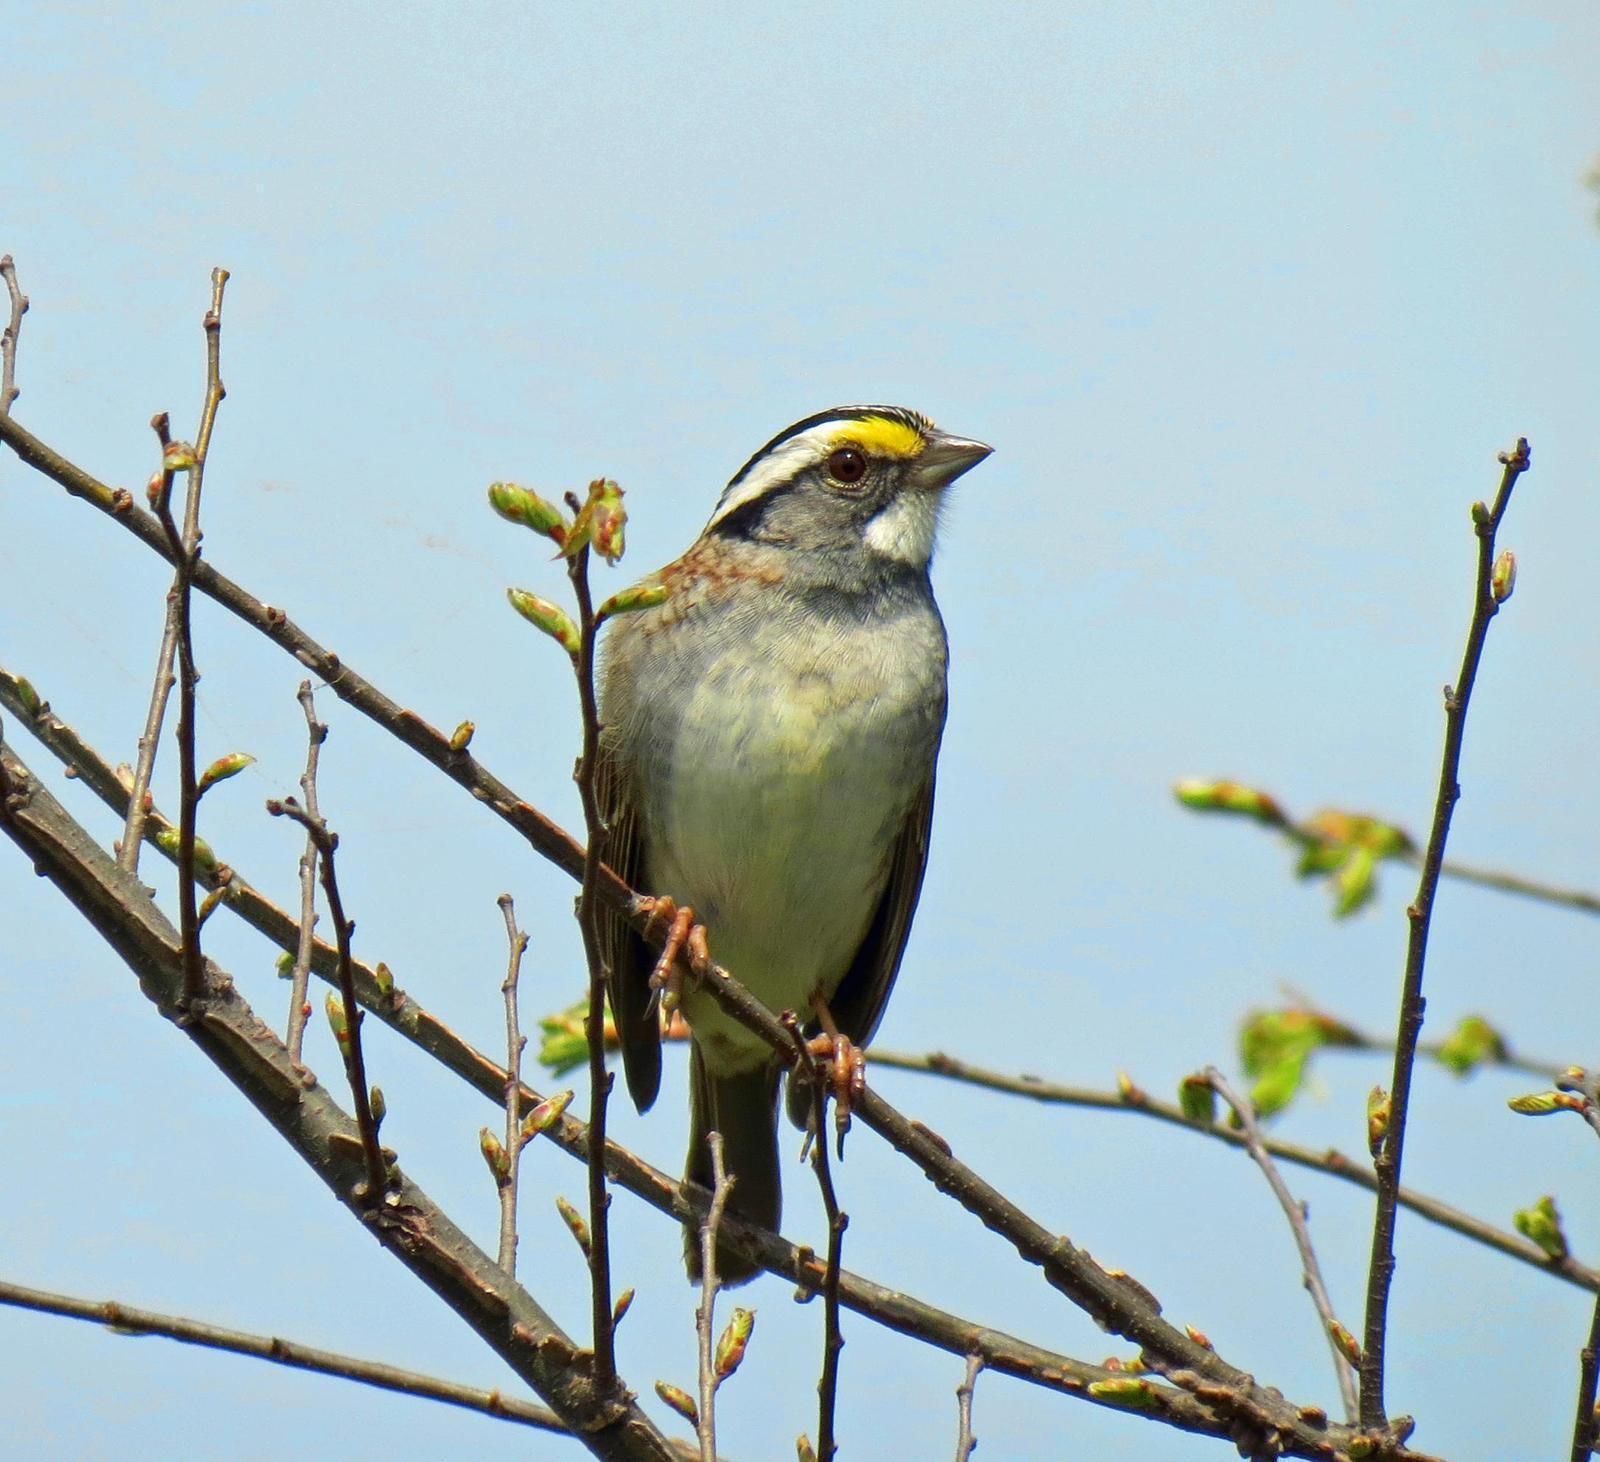 White-throated Sparrow Photo by Sherrie Ingram